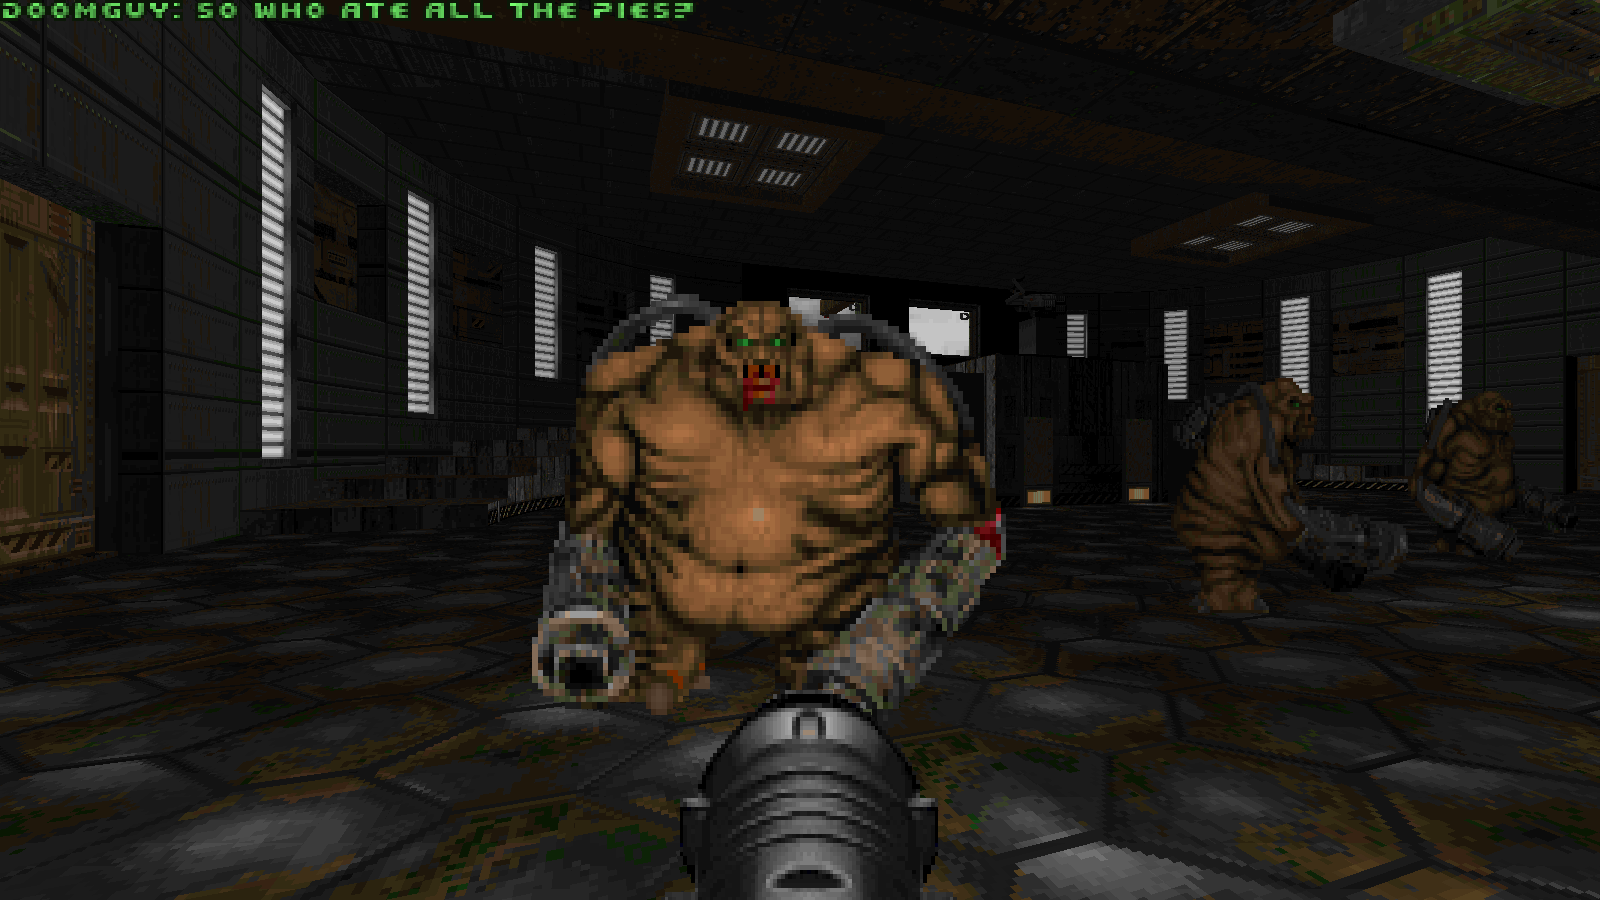 Screenshot_Doom_20190627_112155.png.b863aa6ccbeda13b97f3a39fb4851c25.png